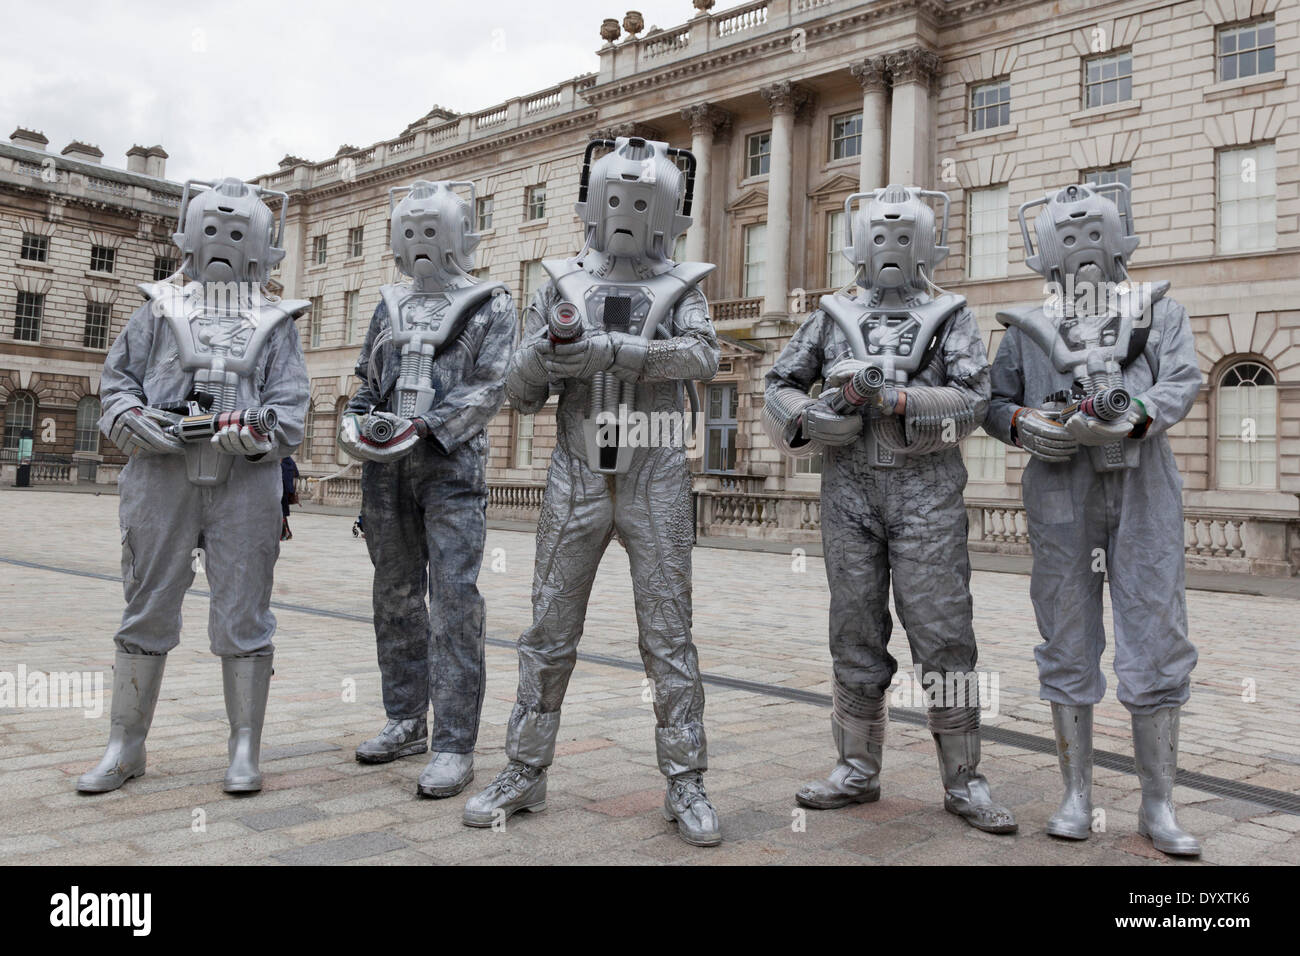 London, UK. 27 April 2014. Cybermen in the Courtyard of Somerset House. Sci-Fi fans gathered in the Courtyard of Somerset House, London, and dressed up as their favourite science fiction character ahead of a parade through London. This 4th annual parade was organised by Sci-Fi London 14, the London International Festival for Science Fiction and Fantastic Film which runs unil May 4th. Photo: Nick Savage/Alamy Live News - Stock Image